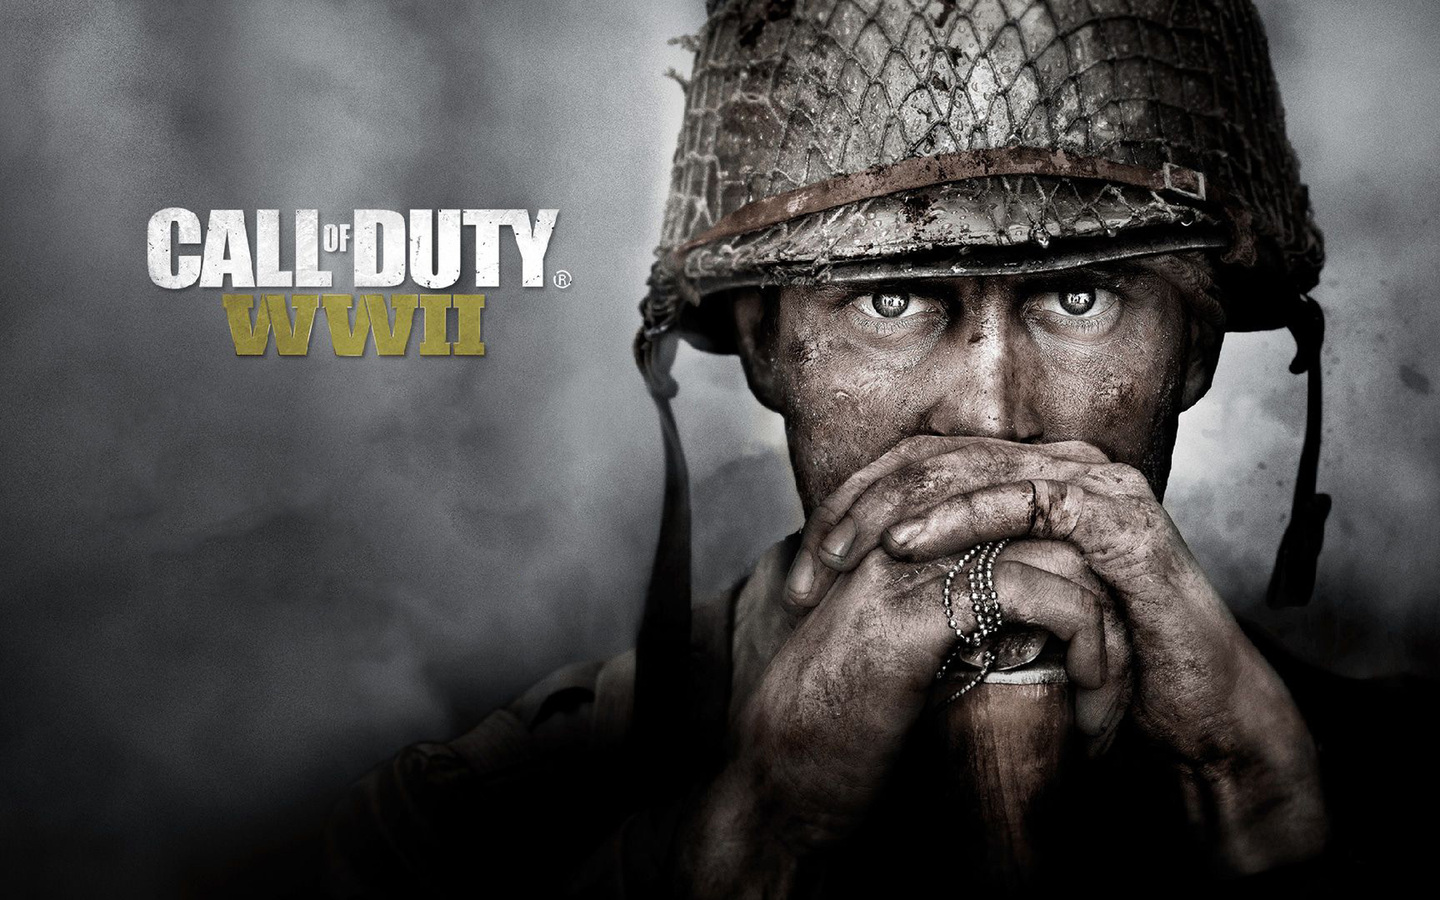 call-of-duty-wwii-wide.jpg